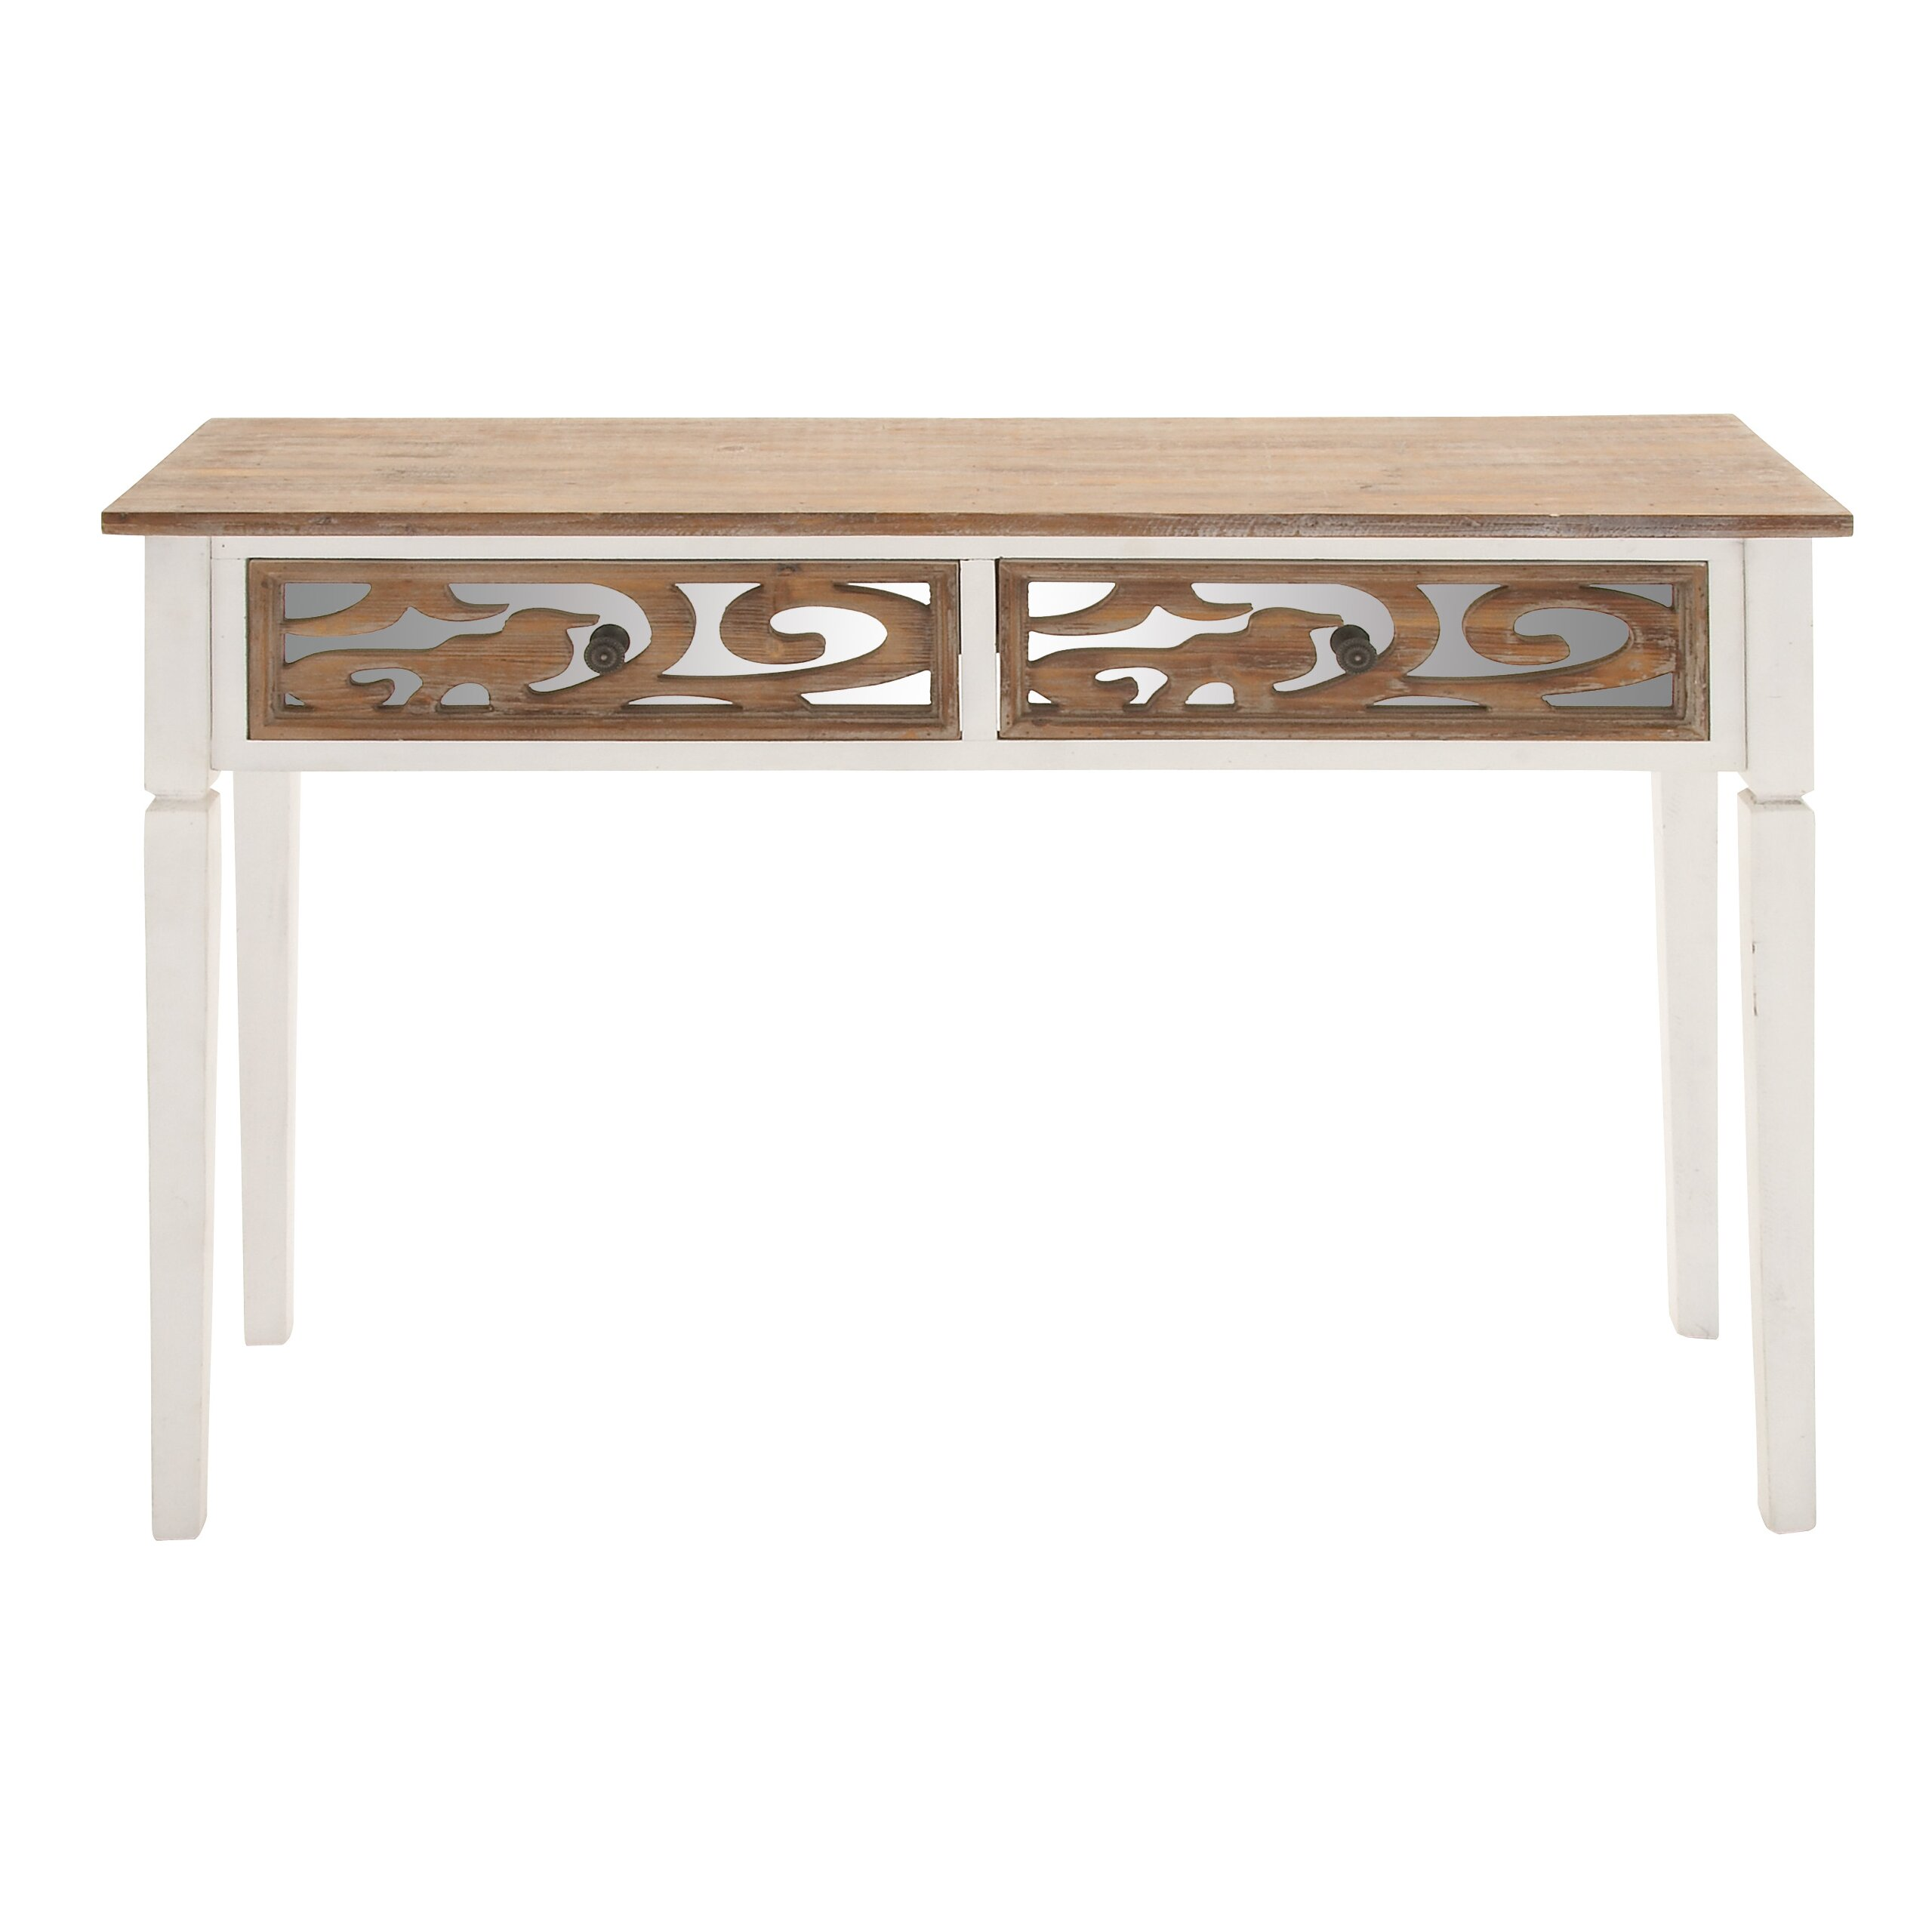 Woodland imports mirror console table wayfair - Table console miroir ...